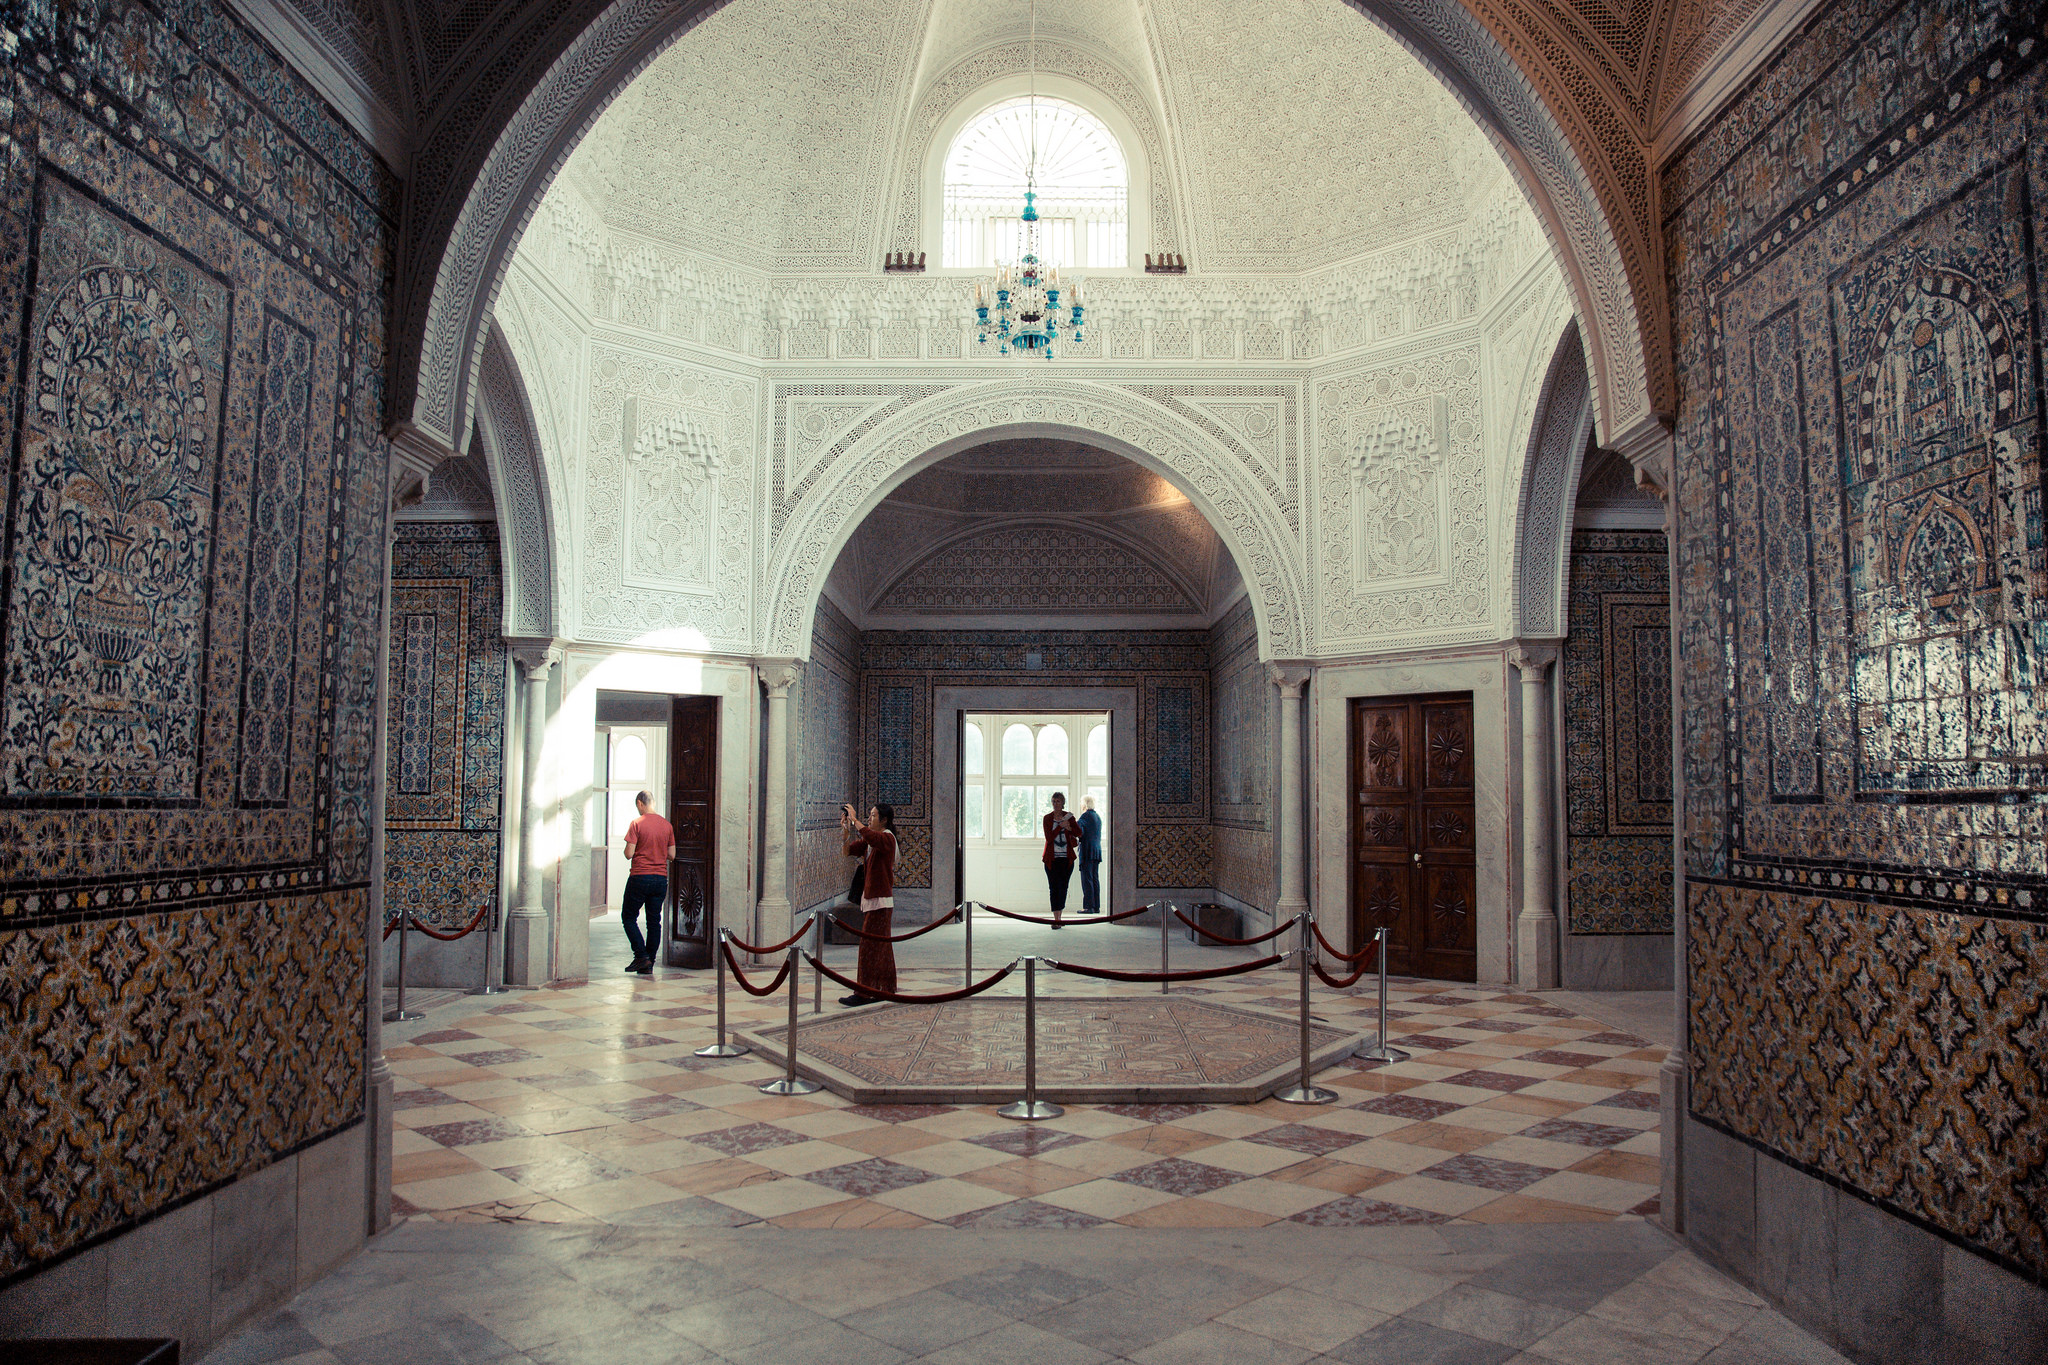 The Bardo National Museum in Tunis, which was the site of an attack on tourists by armed men. By Hsen Bergaoui.